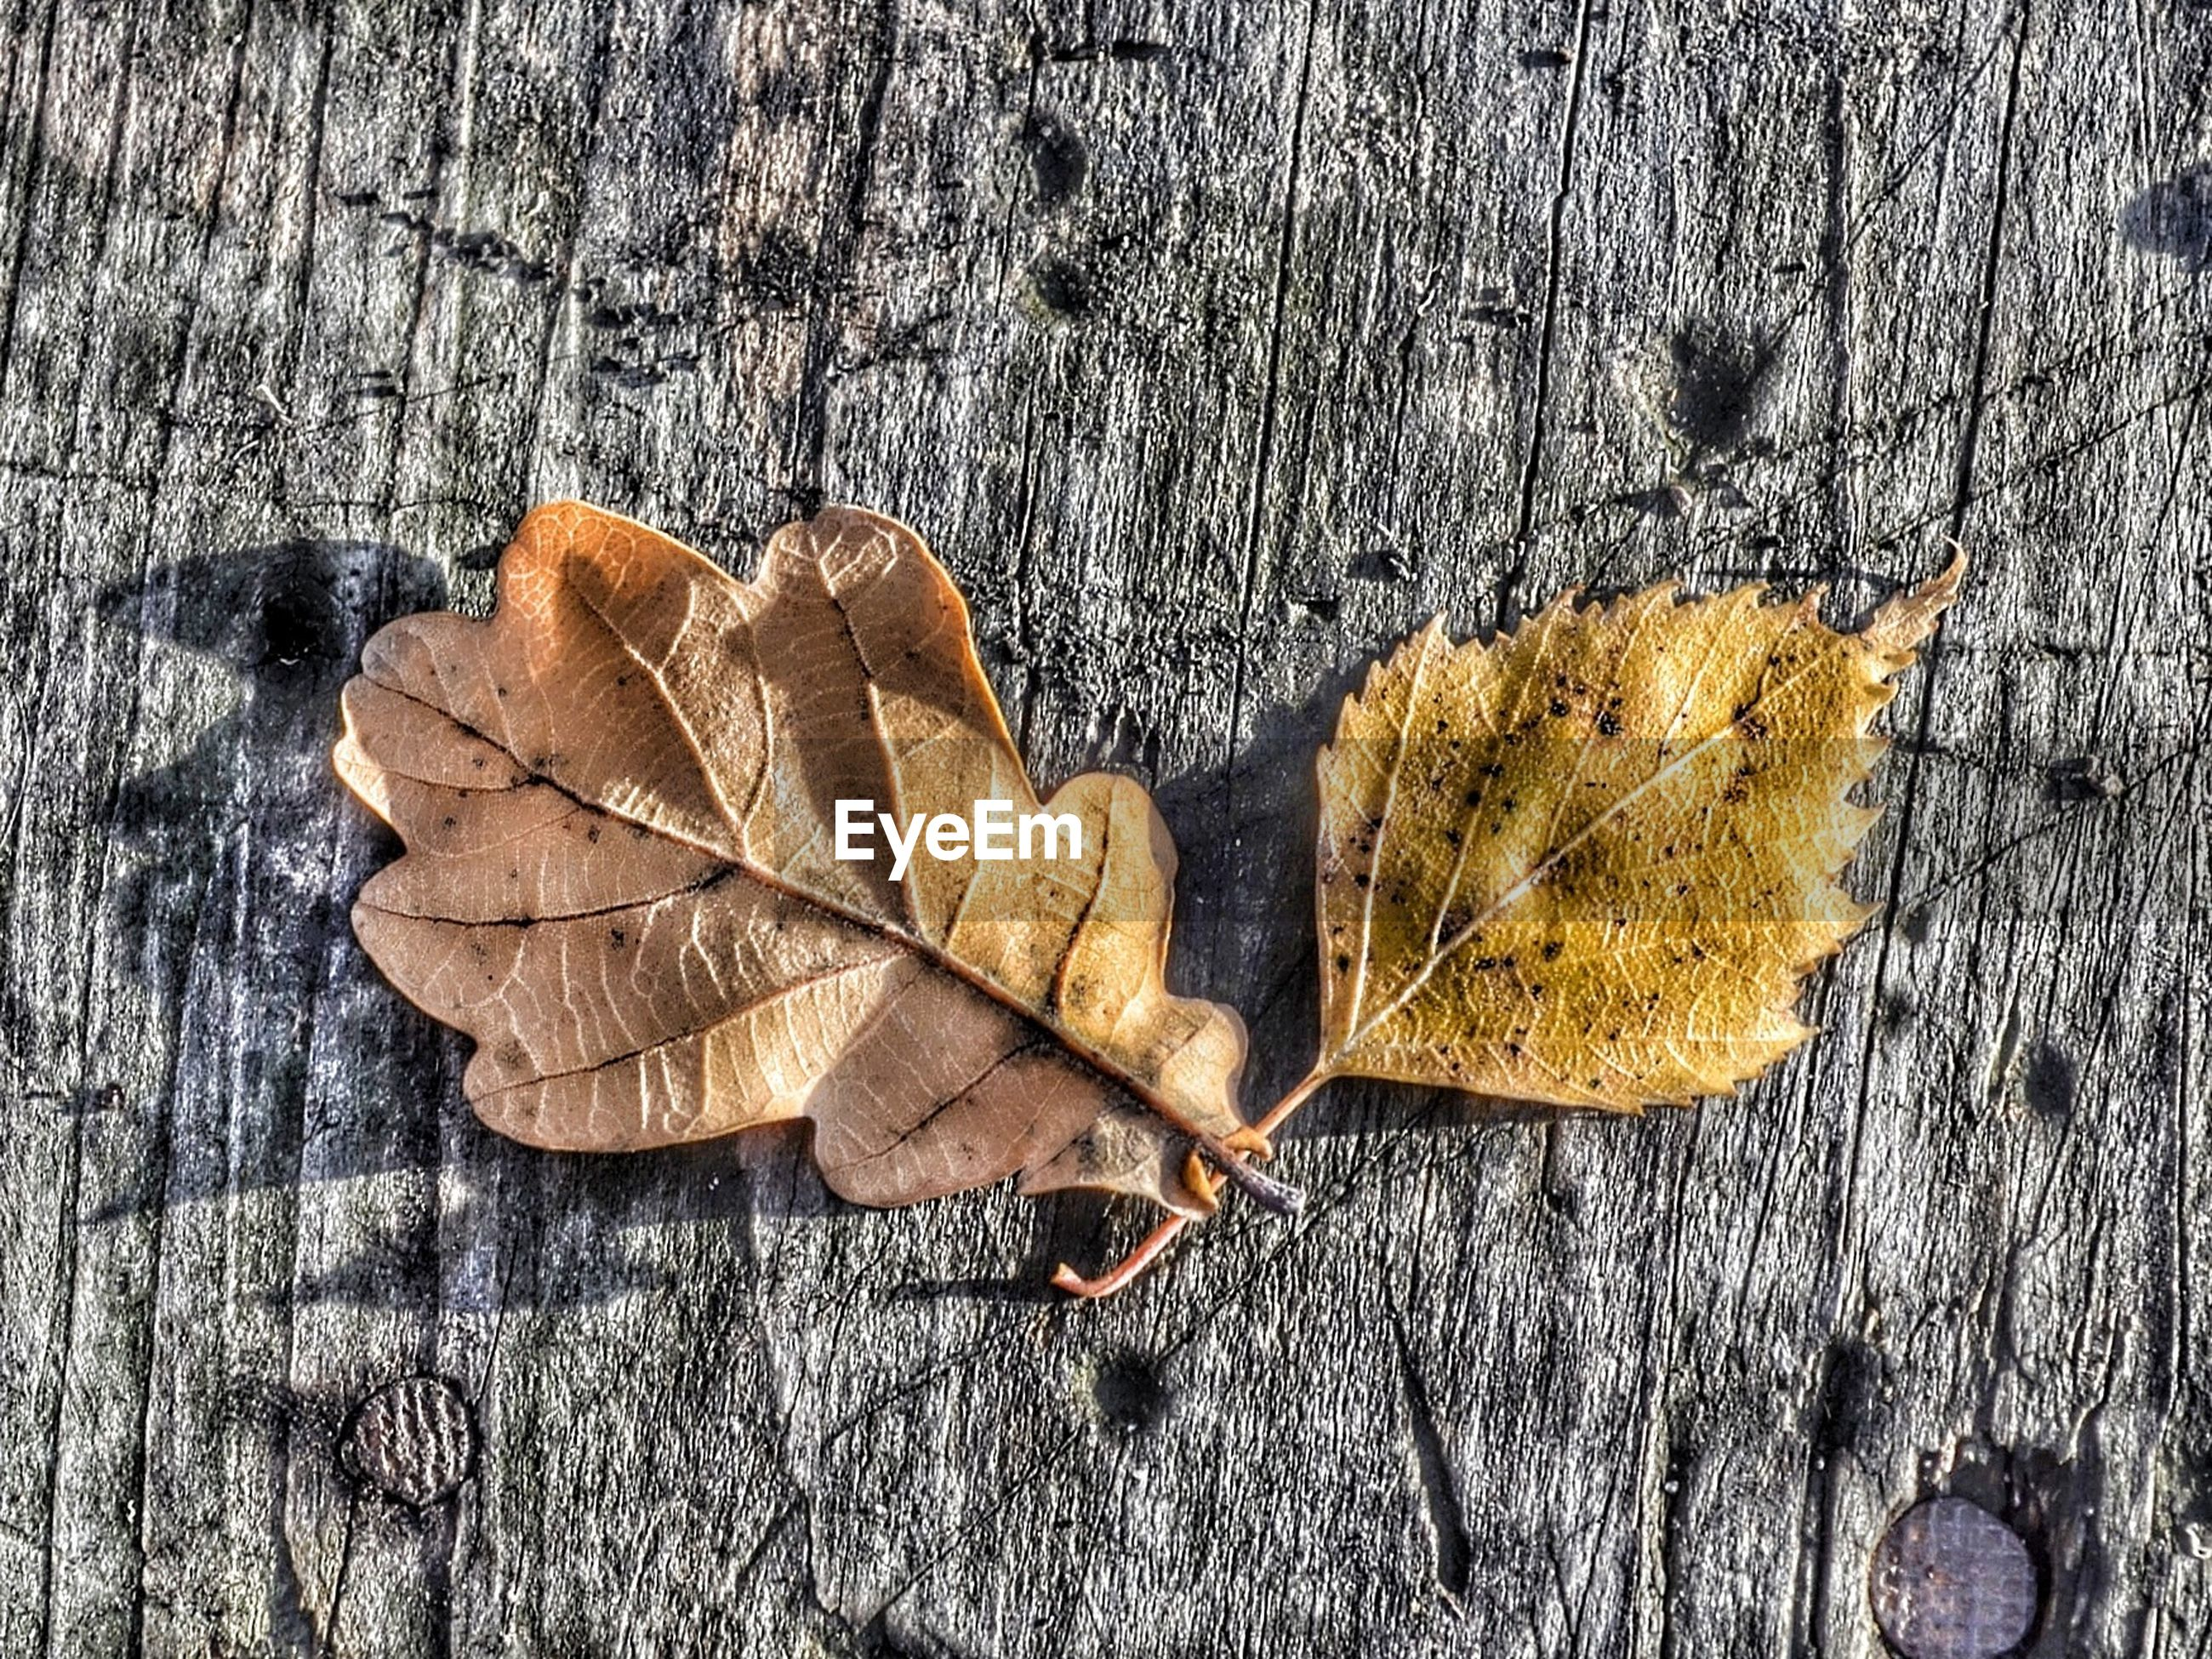 autumn, leaf, dry, change, high angle view, fallen, wood - material, season, close-up, textured, nature, natural pattern, day, outdoors, no people, leaves, ground, still life, natural condition, aging process